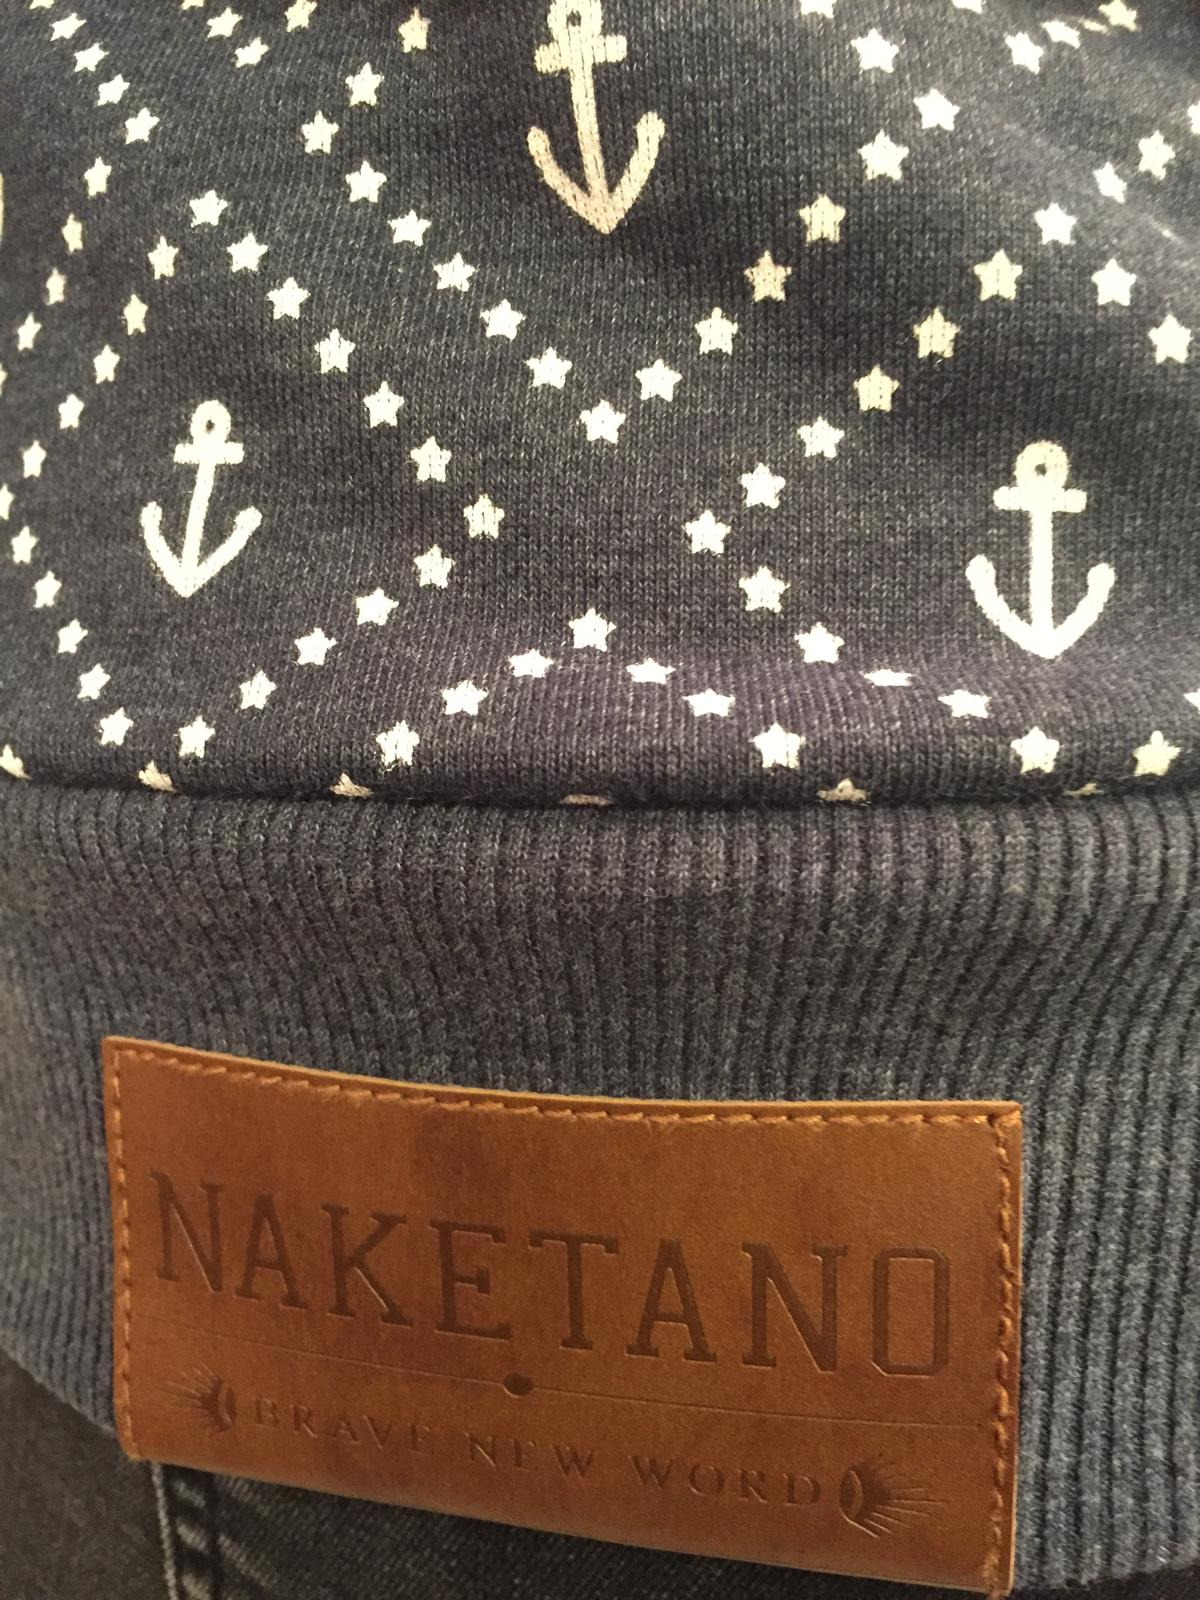 Naketano Dames - Jennifer Hart Hoodie (Indigo Blue Melange) close up